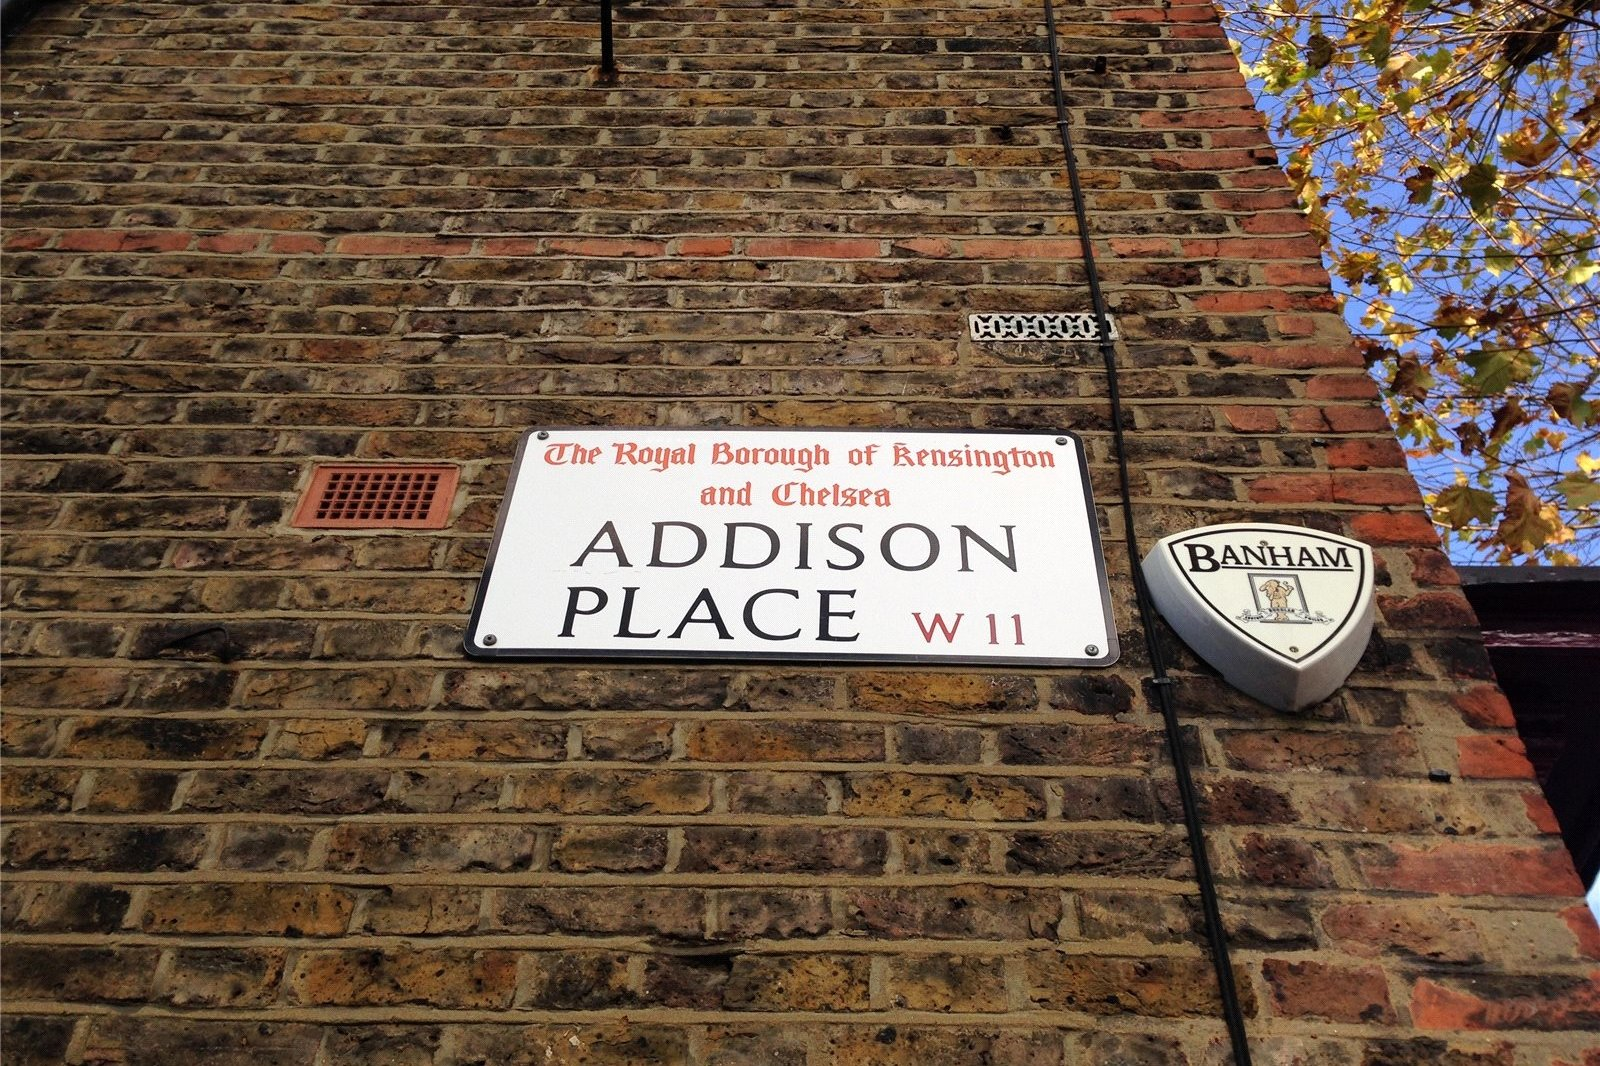 Addison Place, Holland Park, London, W11-9